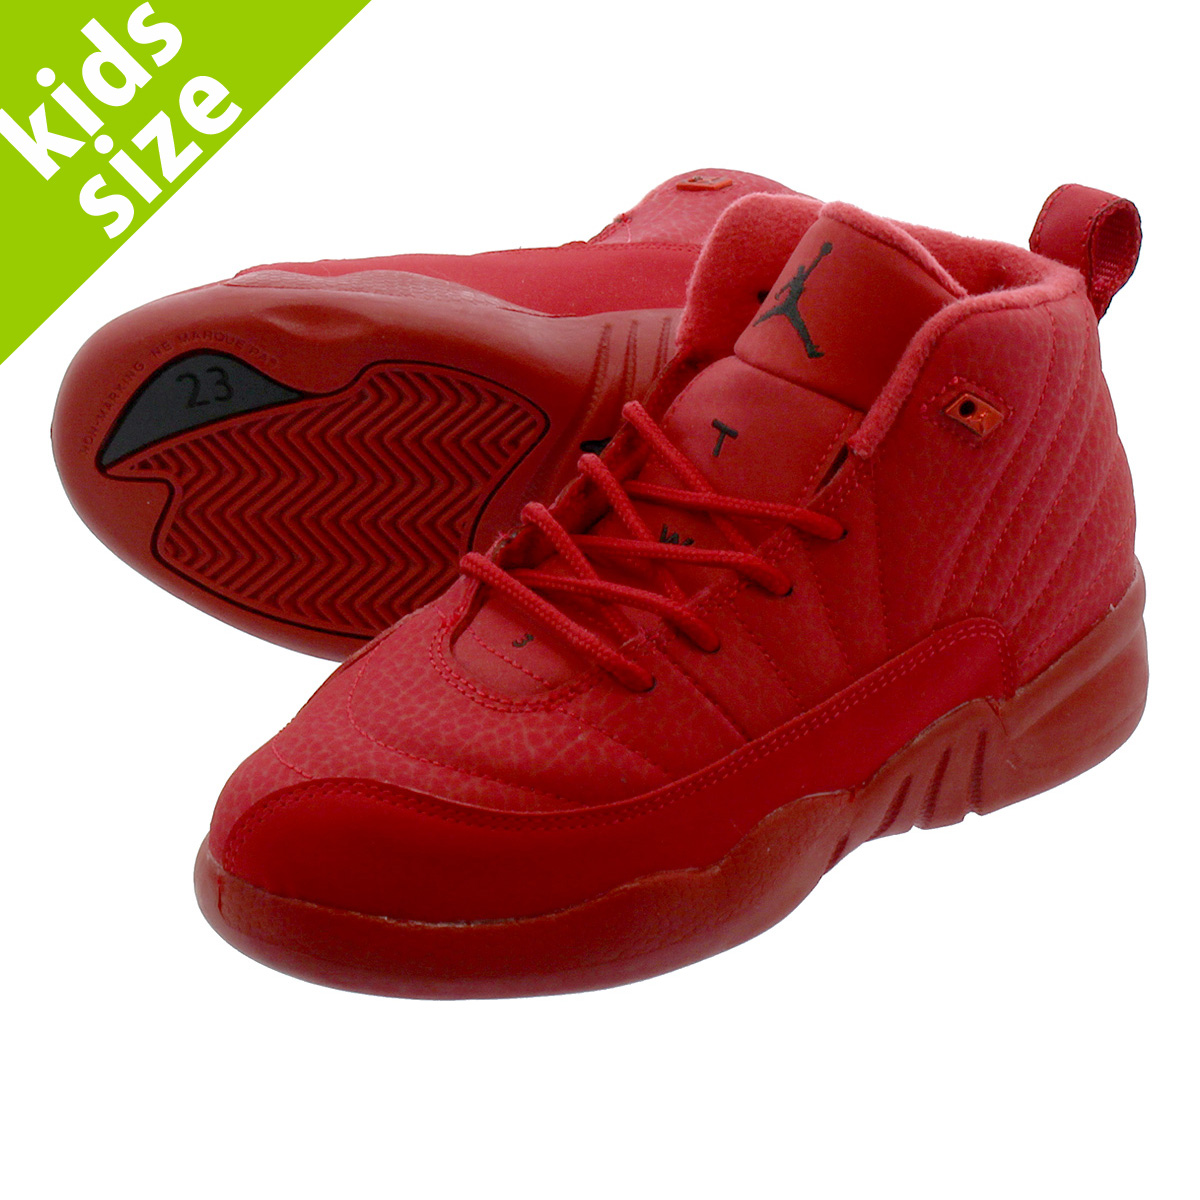 new arrival a8a3e 07a19 NIKE AIR JORDAN 12 RETRO PS Nike Air Jordan 12 nostalgic PS GYM  RED/BLACK/BLACK 151,186-601